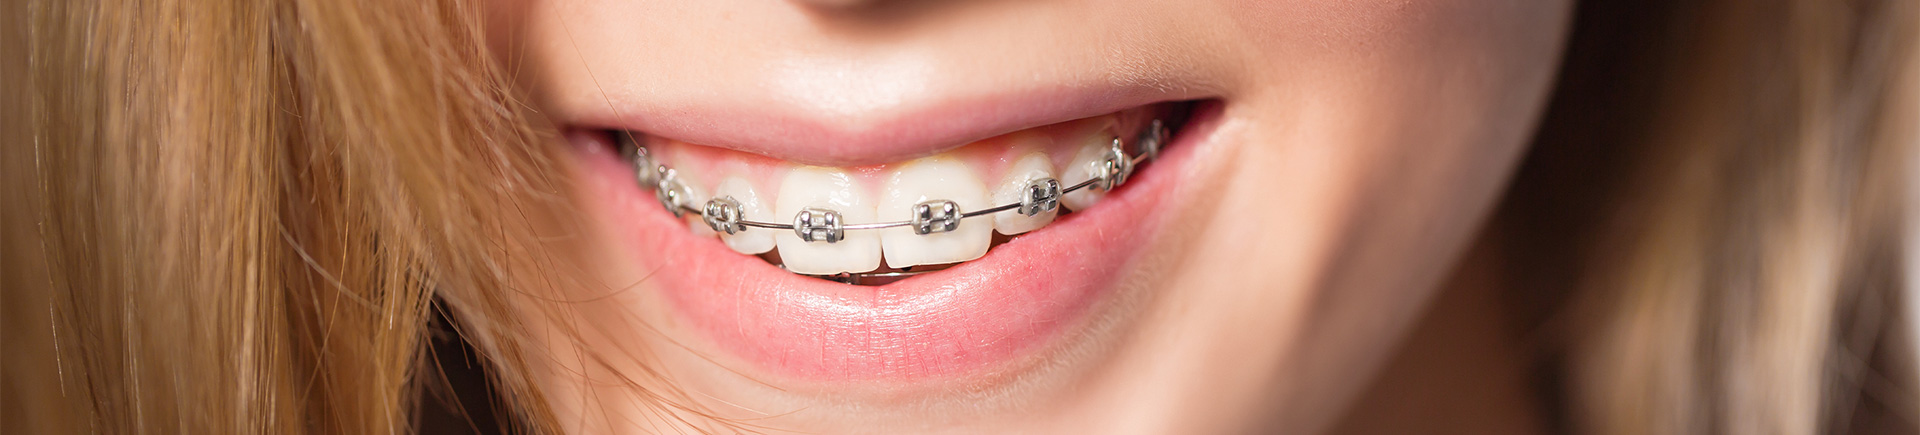 Why an Orthodontist? Milton, GA